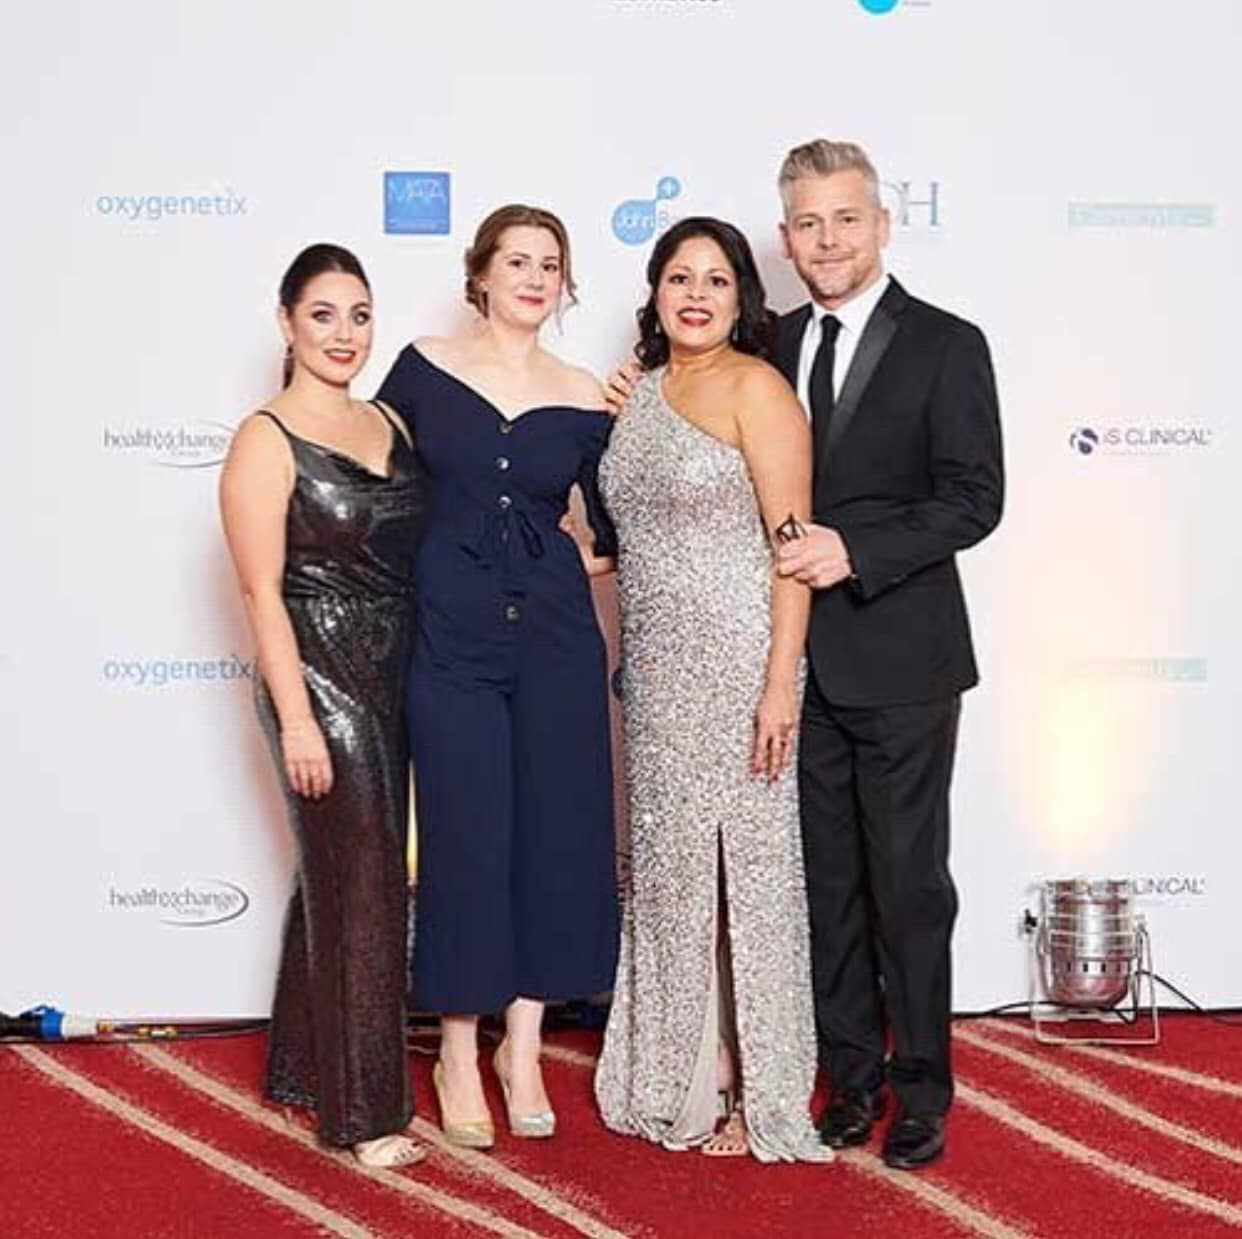 We're finalists in the Aesthetics Awards! The Clinic by Dr Mayoni